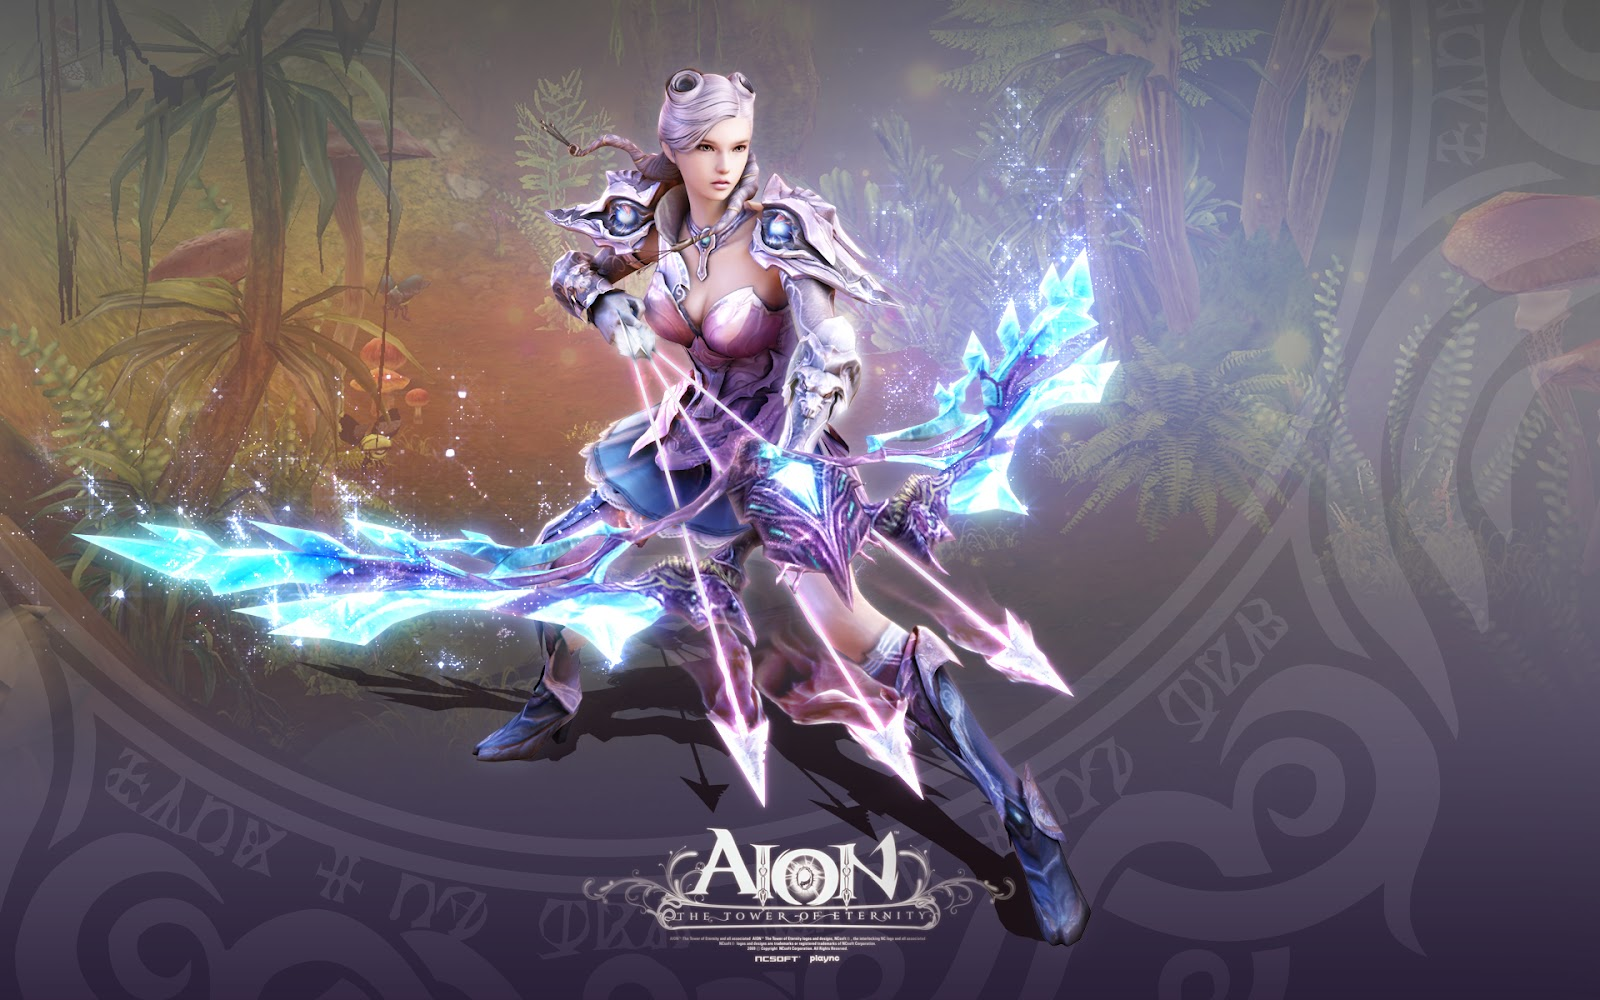 Aion game video fantasy art artwork mmo online action fighting ascension rpg echoes eternity upheaval warrior magic